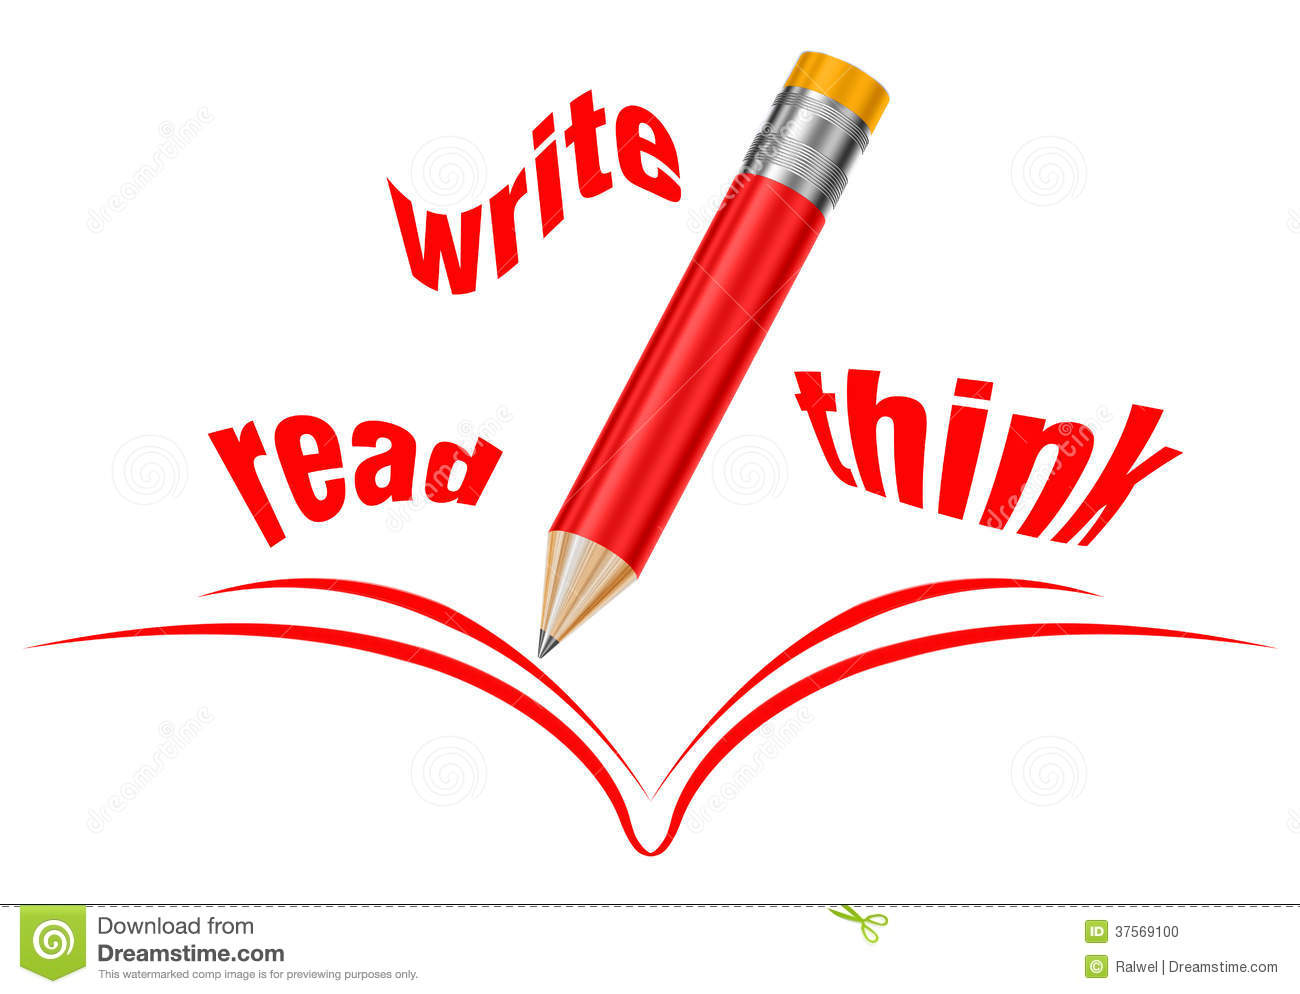 More similar stock images of ` Read, write, think `